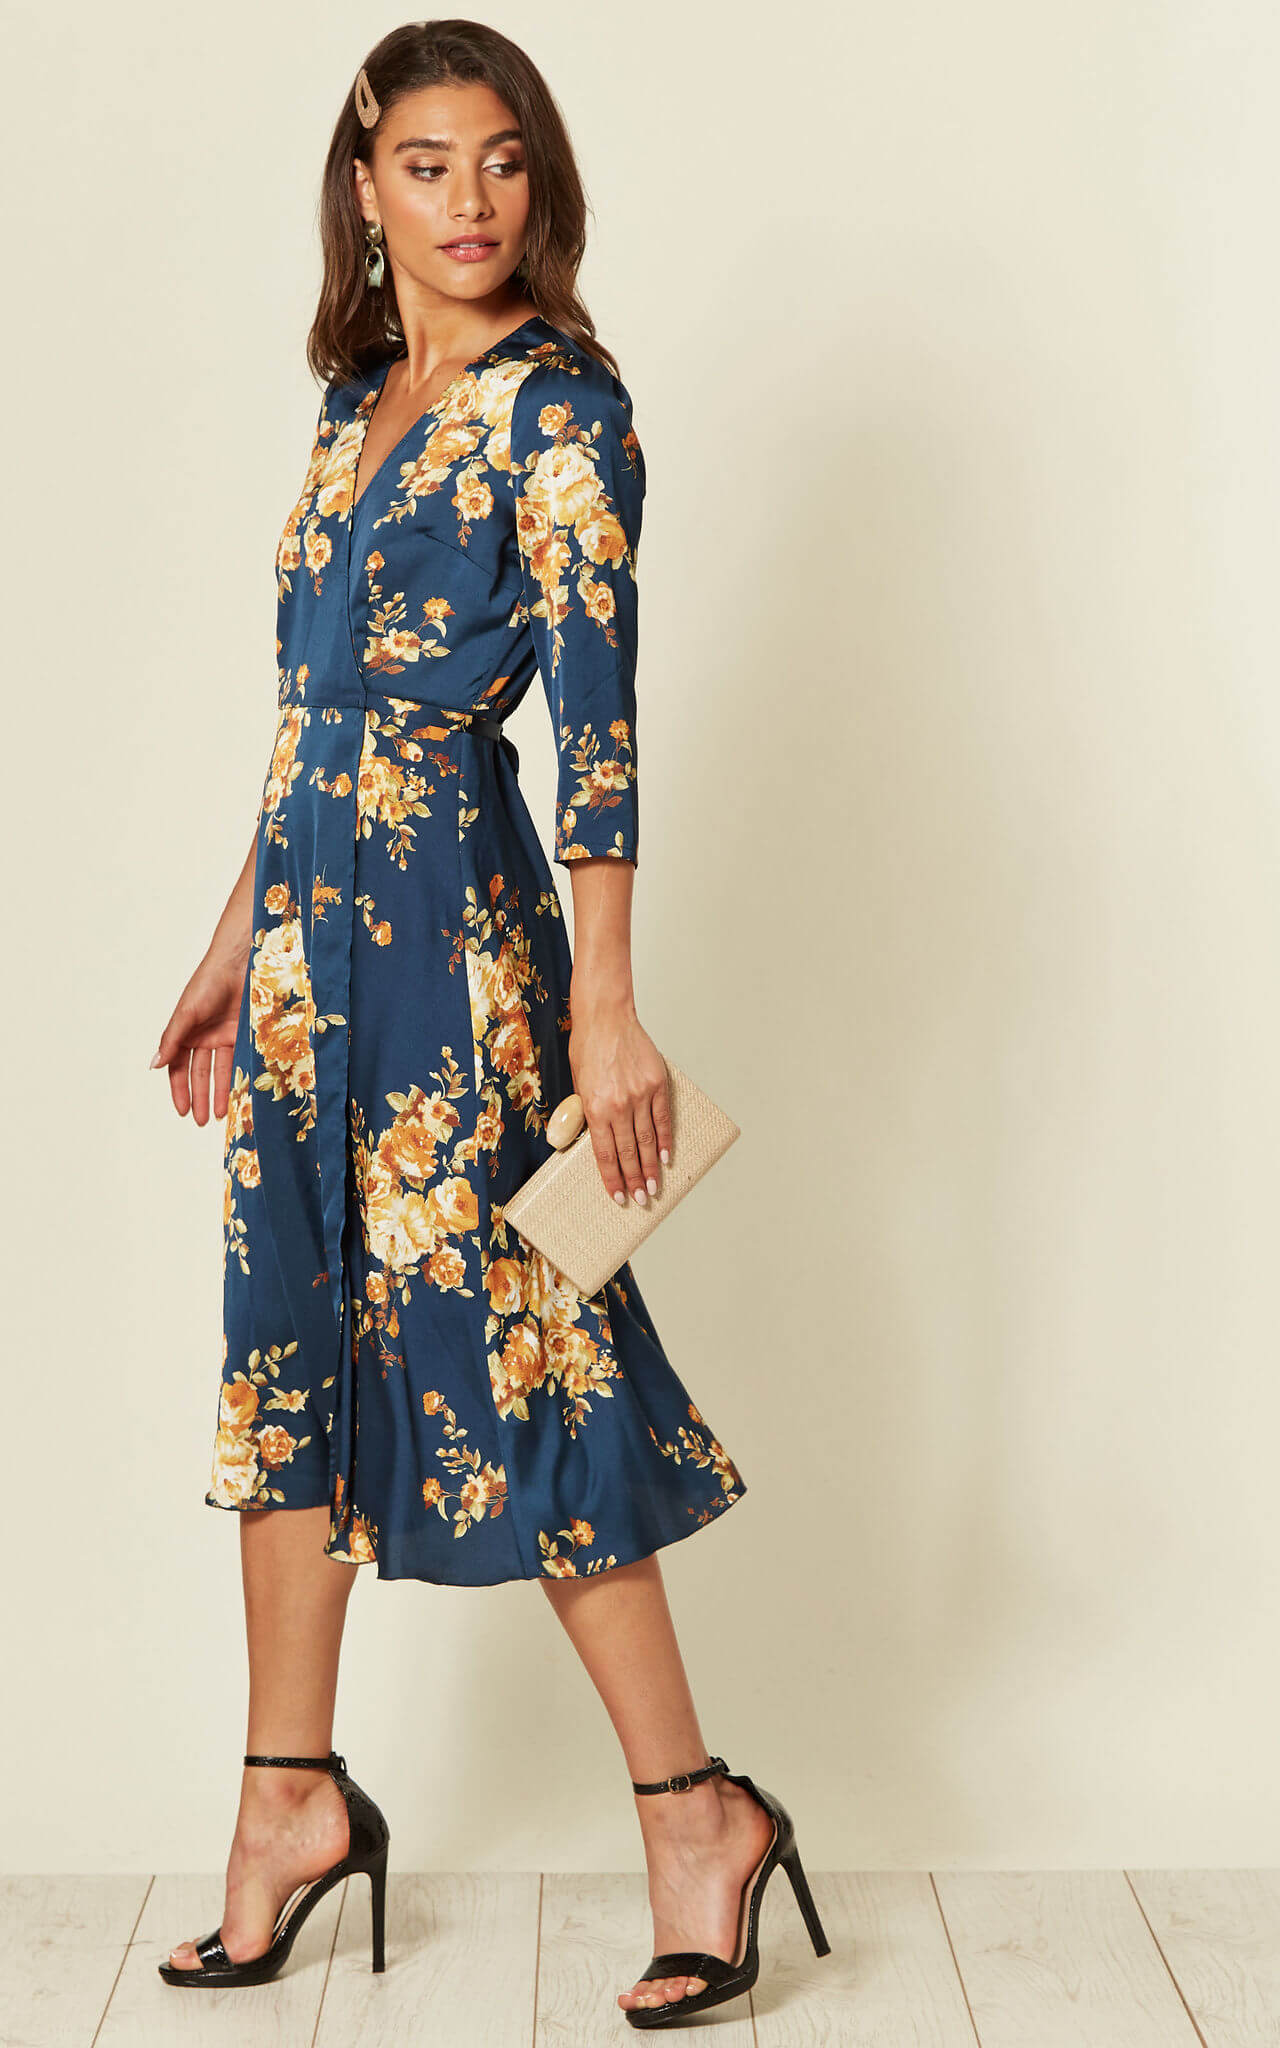 Model wears a blue wrap dress with yellow floral pattern with black heels and nude clutch bag